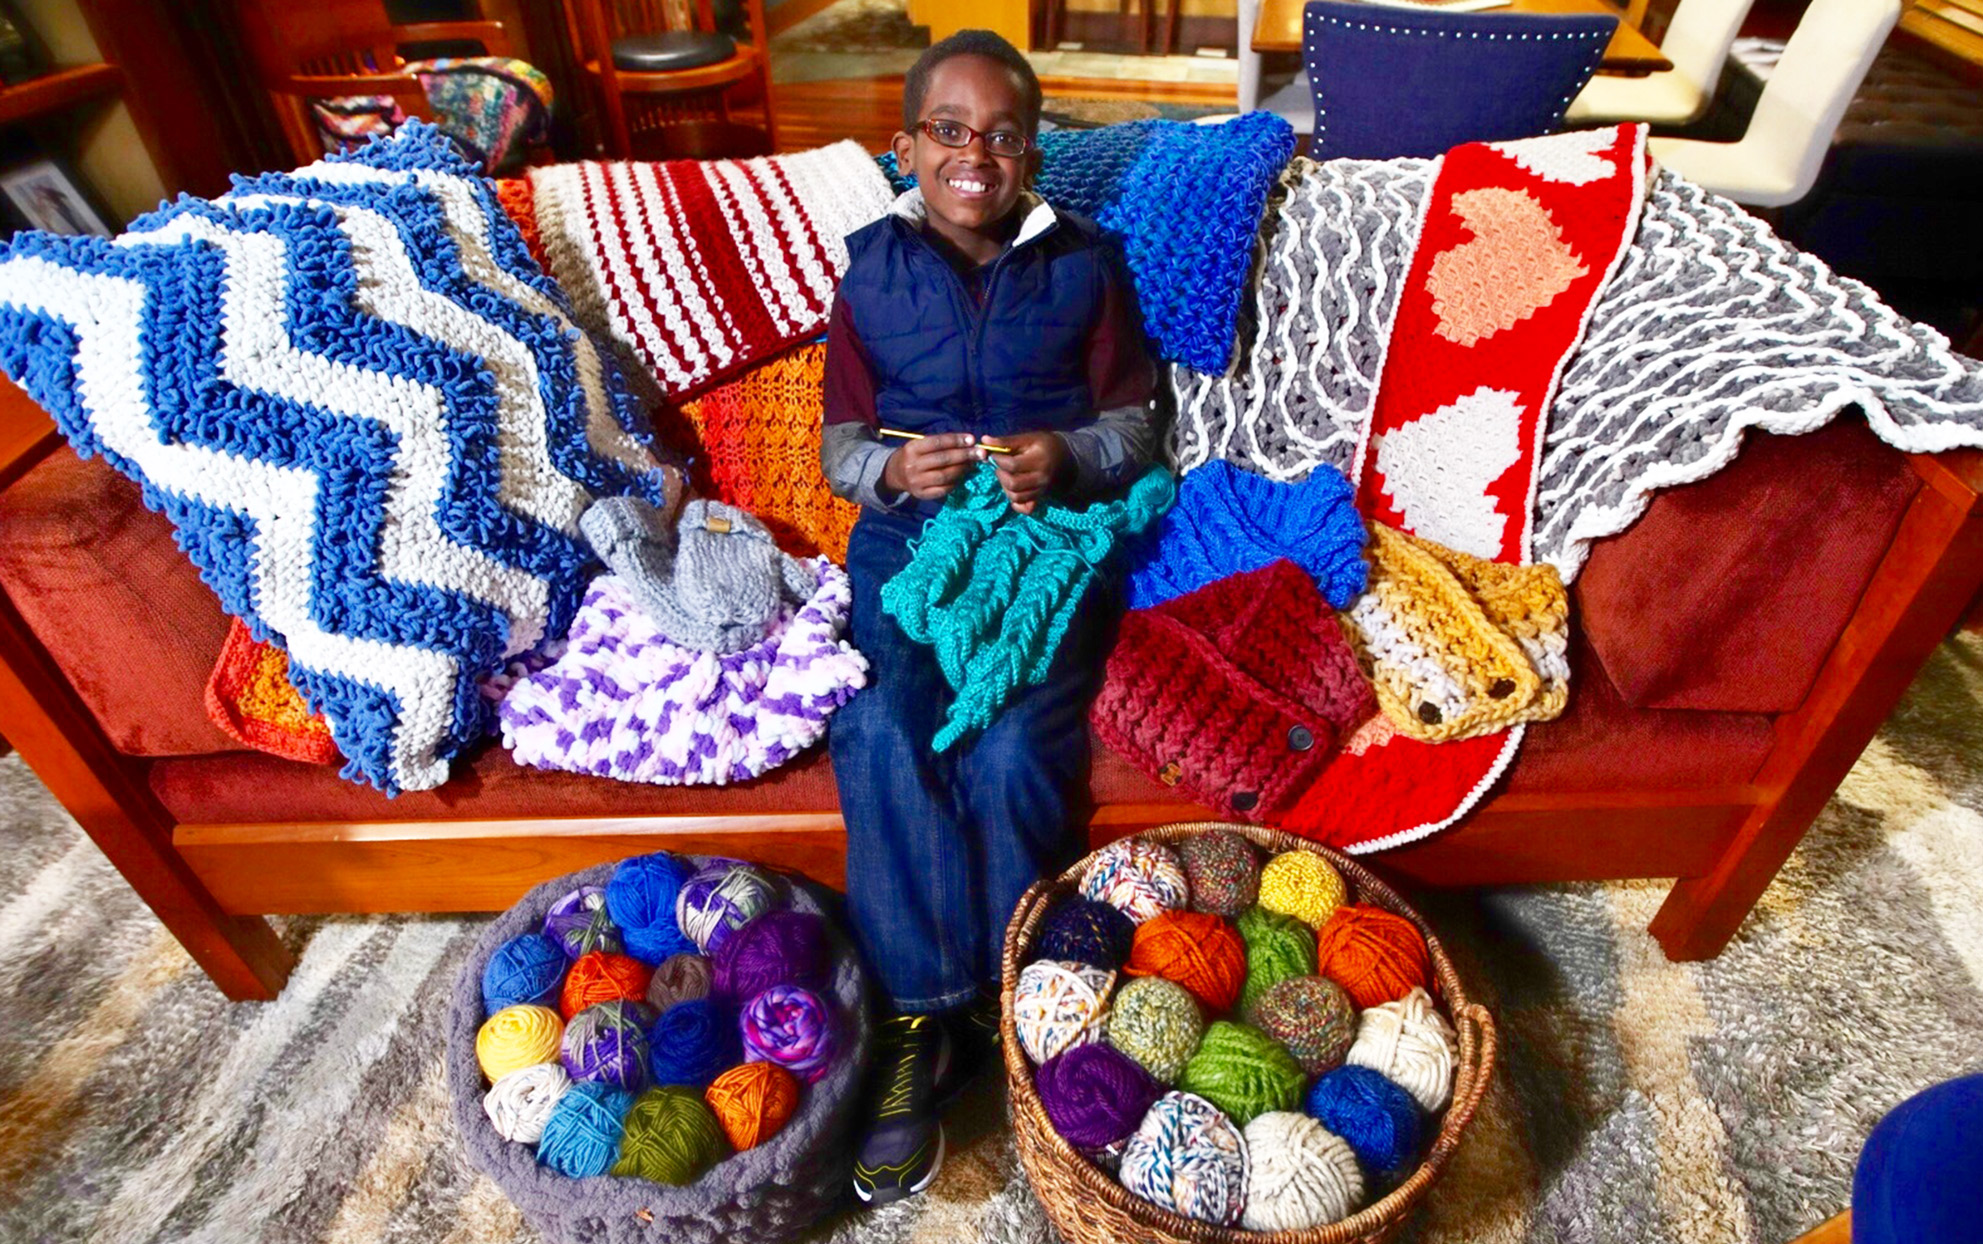 Jonah Larson sitting on a sofa knitting with knitting supplies nearby